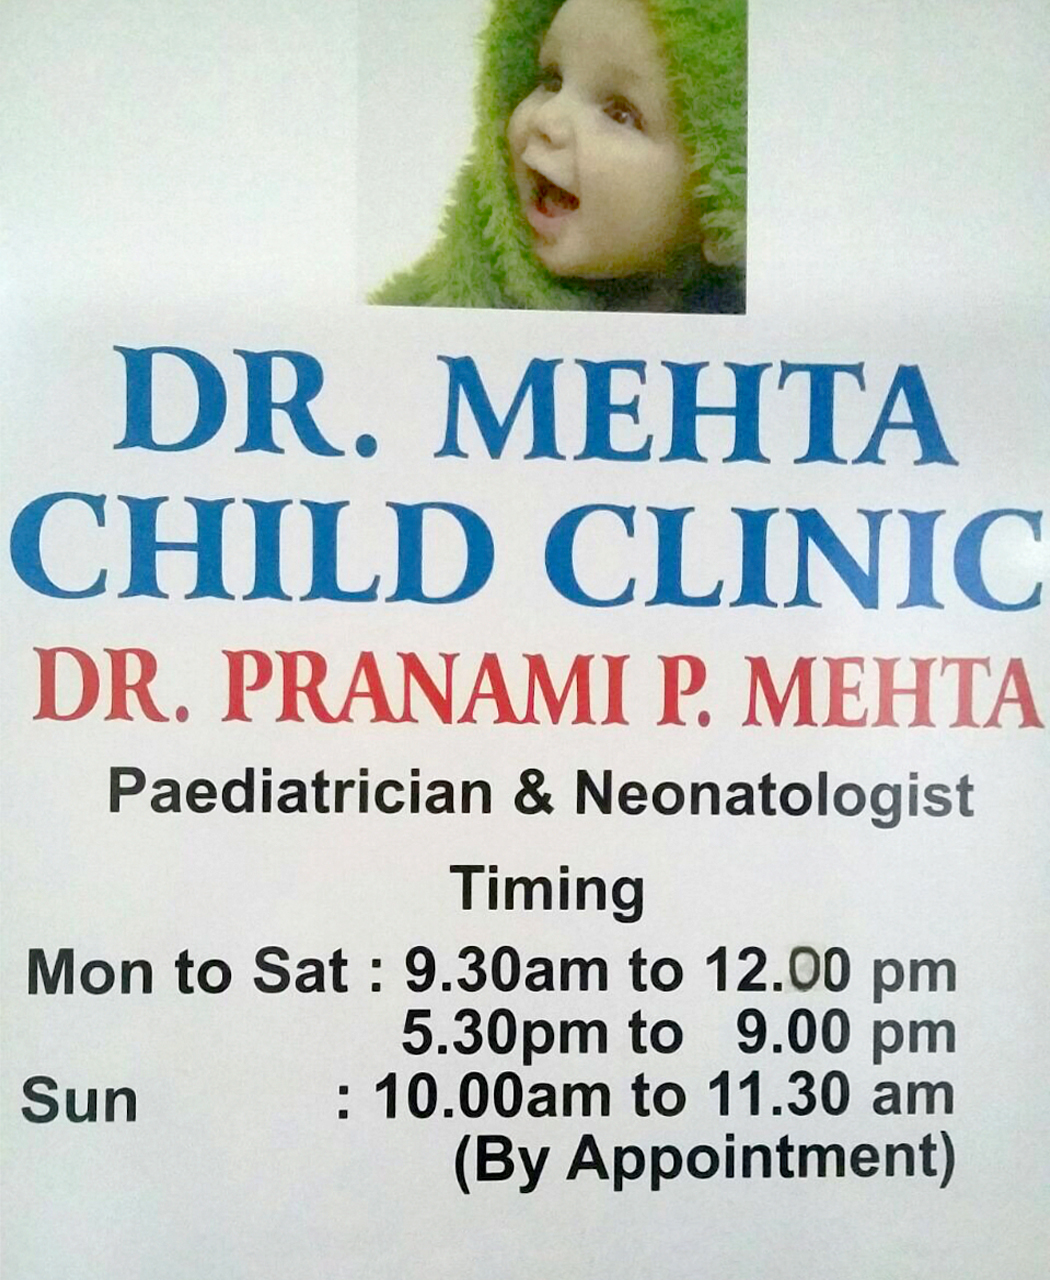 Dr. Mehta Child Clinic